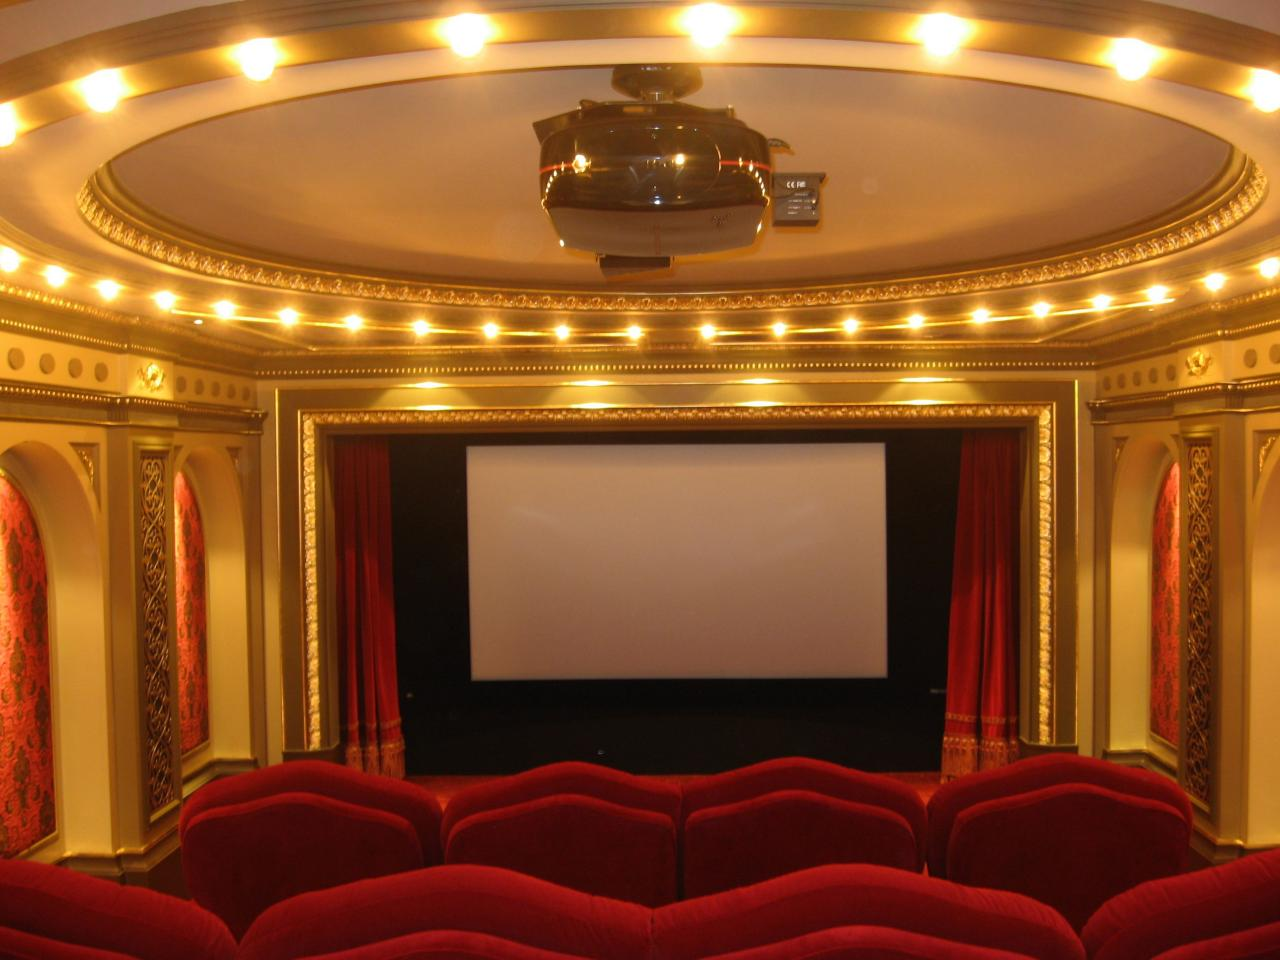 Ordinaire Related To: Designing Home Theater Decorating